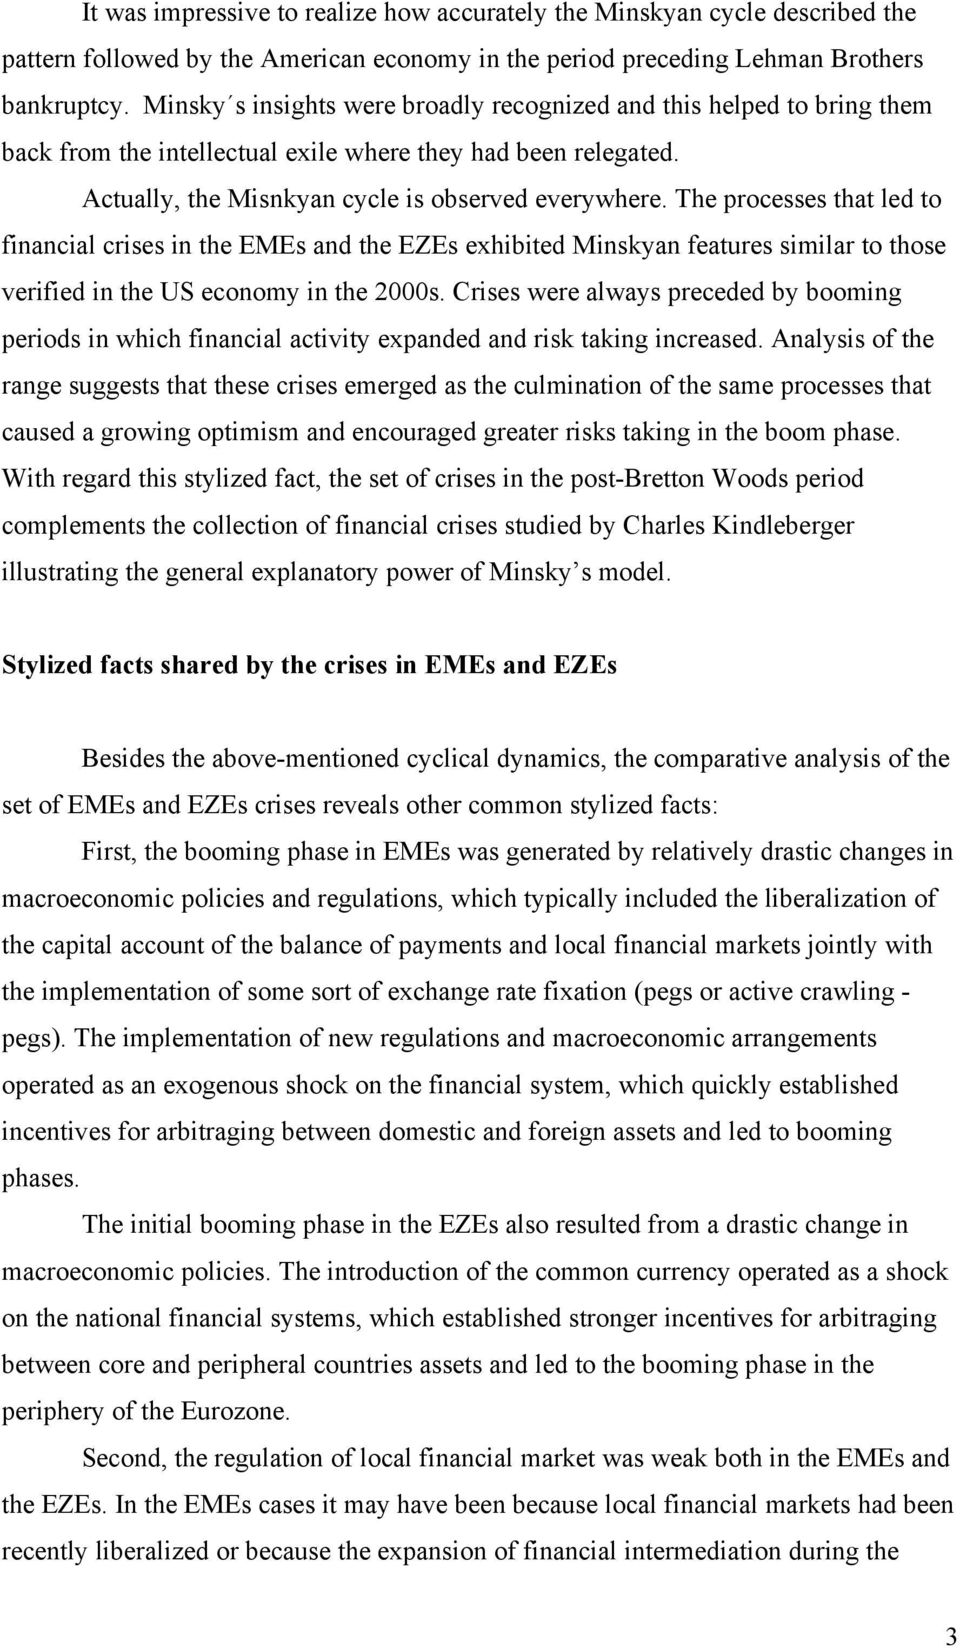 The processes that led to financial crises in the EMEs and the EZEs exhibited Minskyan features similar to those verified in the US economy in the 2000s.